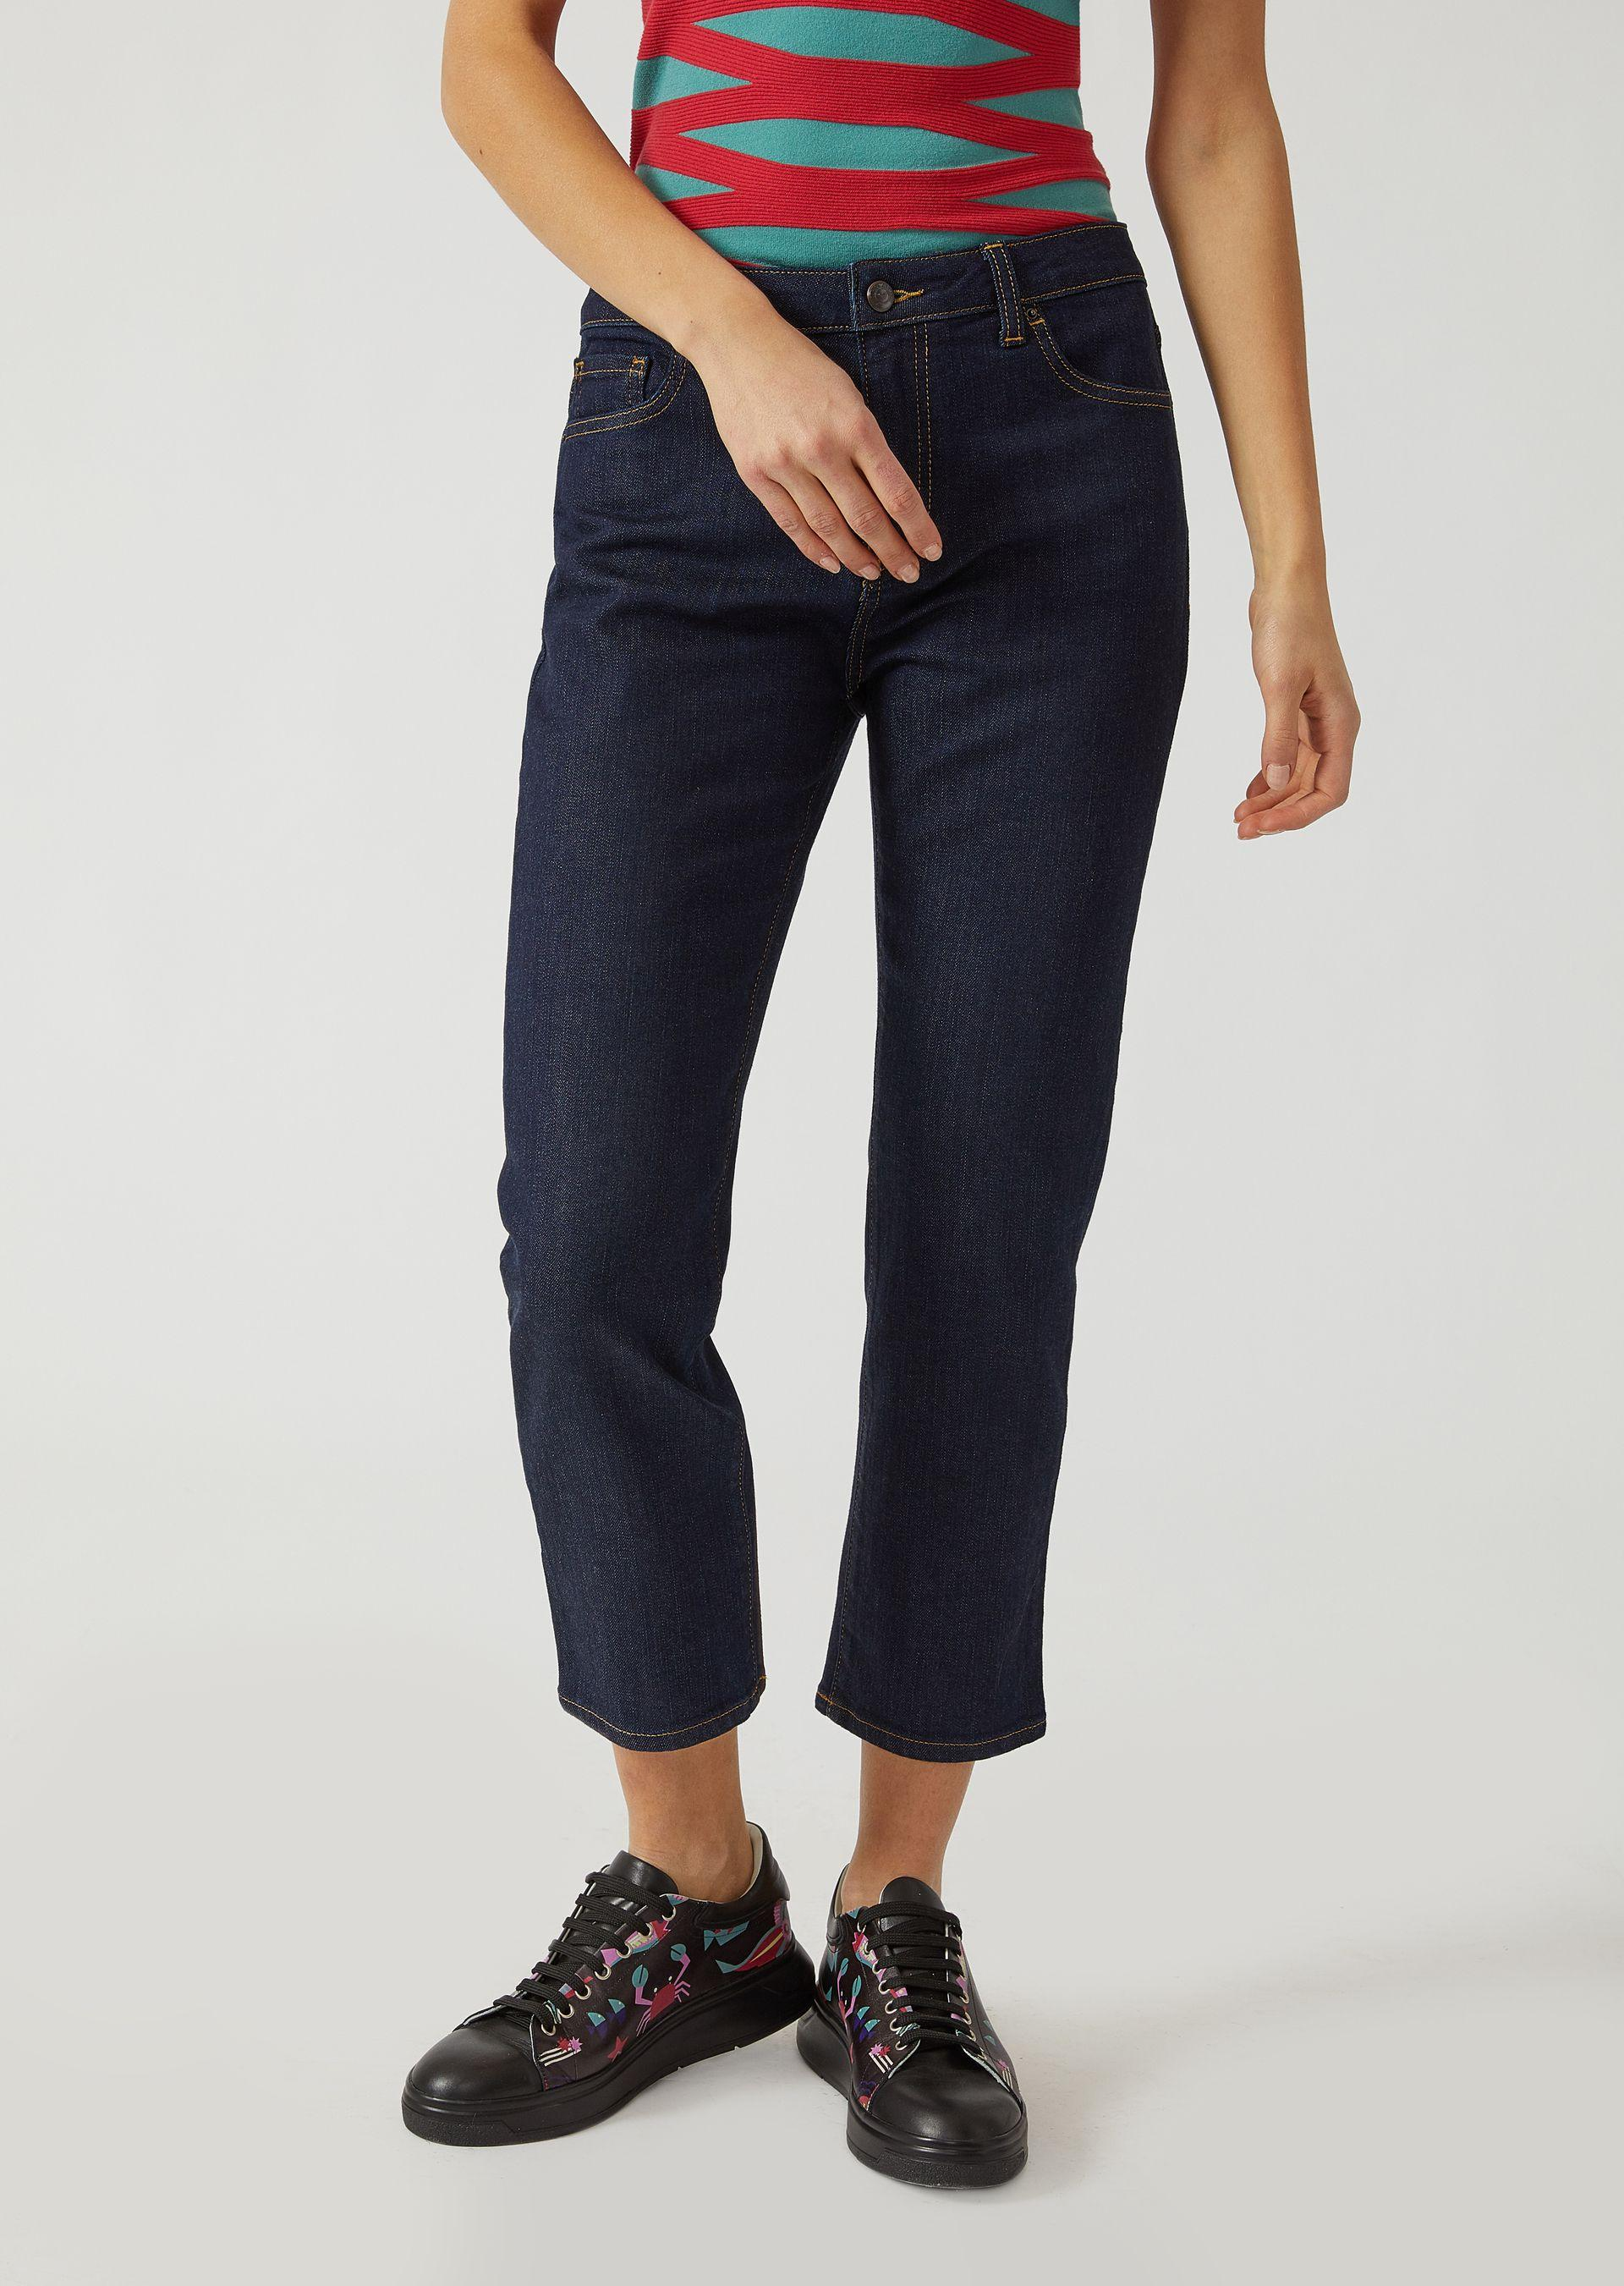 Emporio Armani Tapered Jeans - Item 42666751 In Blue